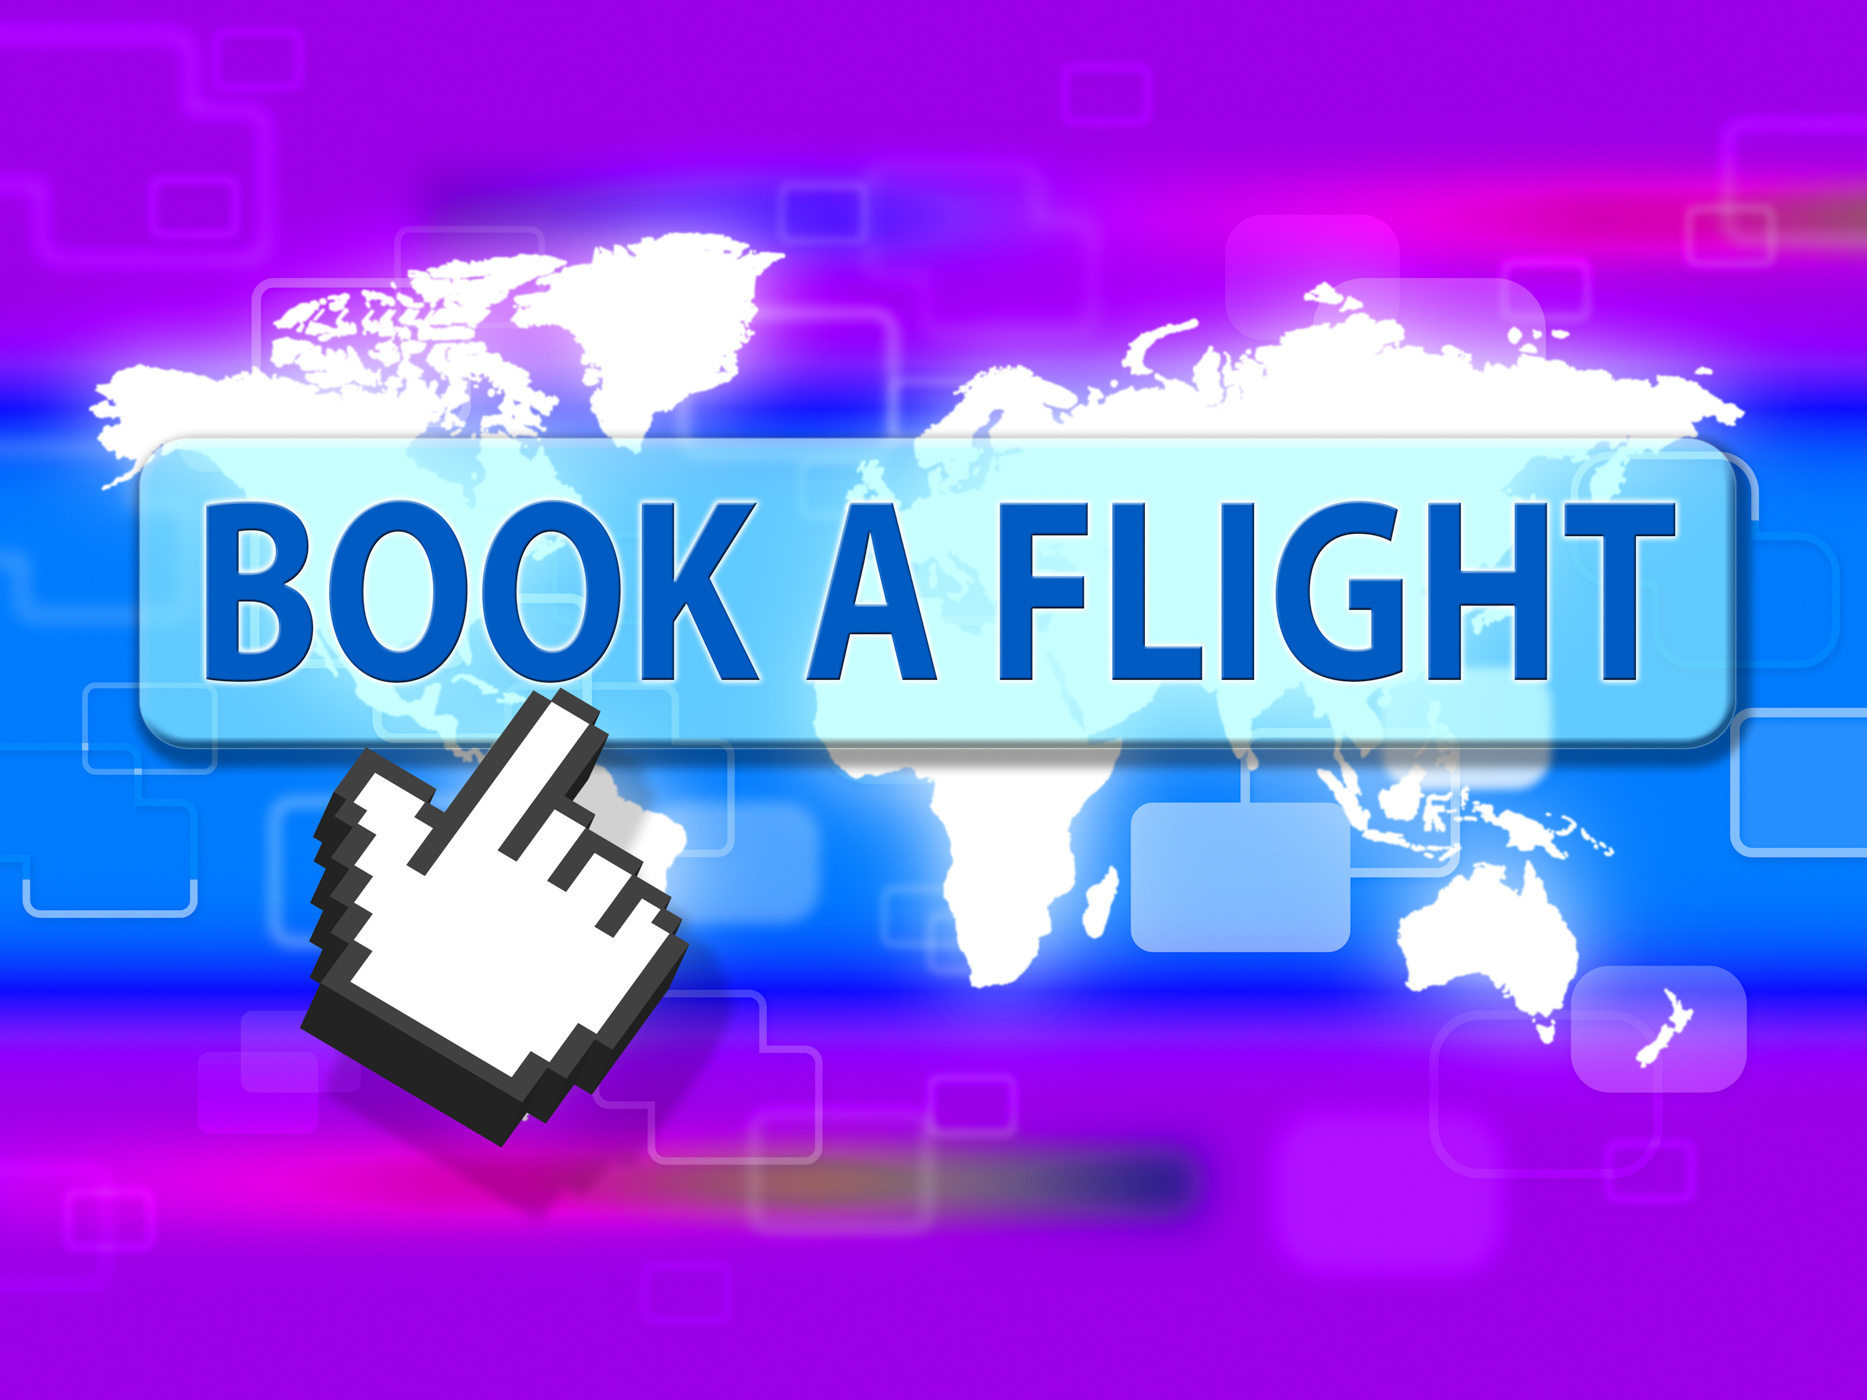 Book flight indicates reserved plane and travel photo